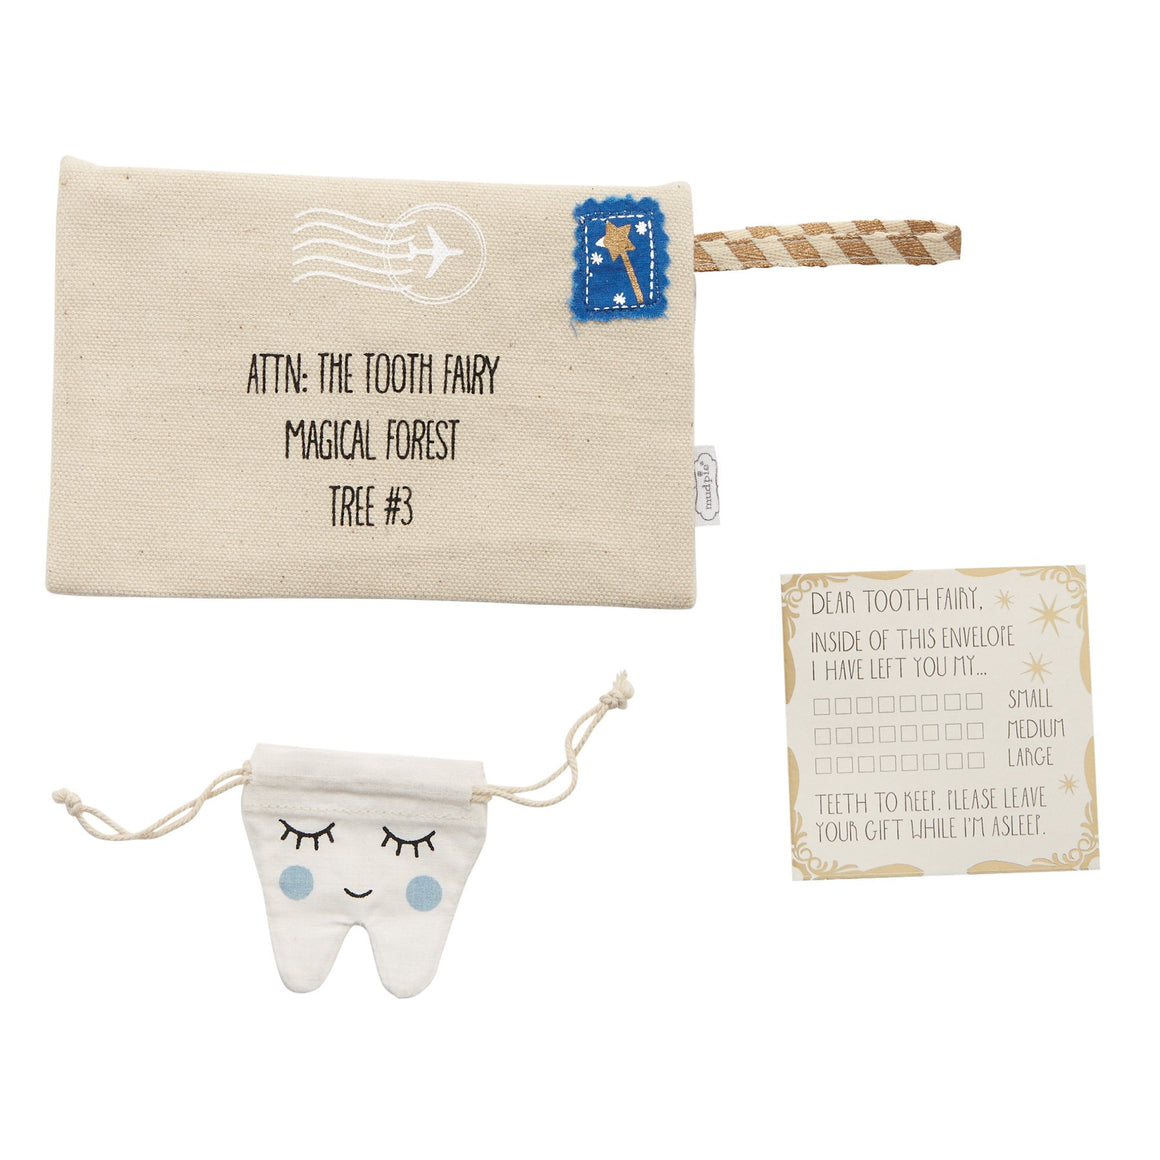 Boy Tooth Fairy Envelope